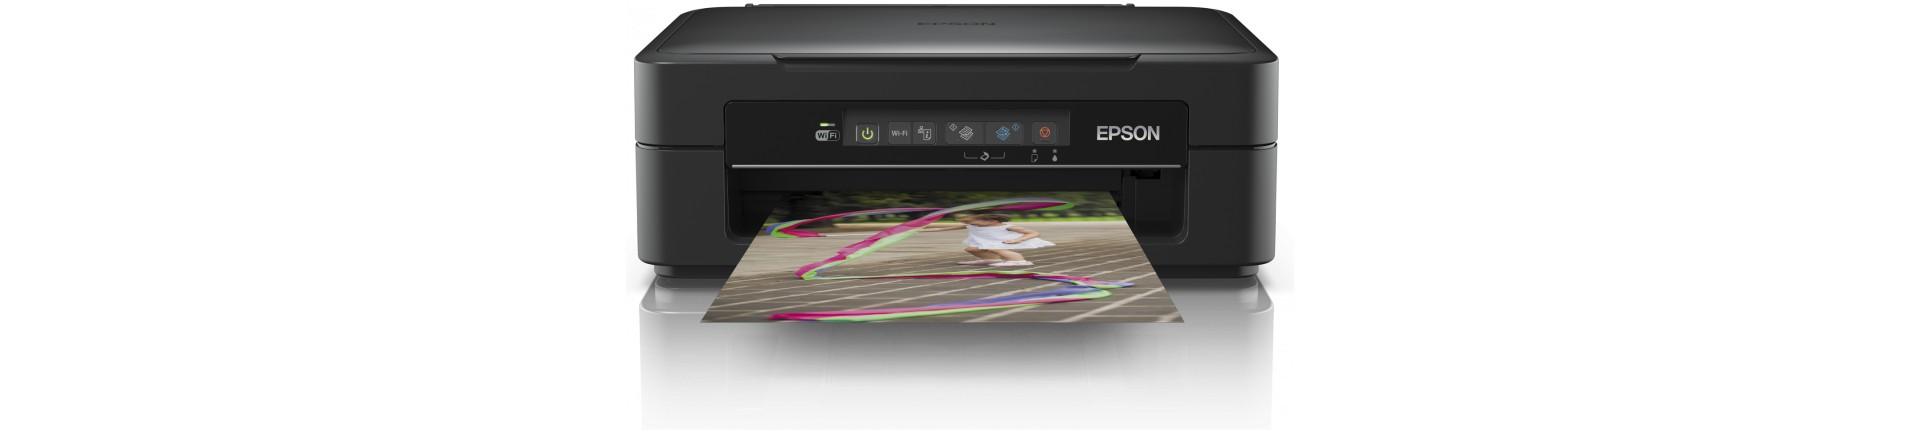 Epson Expression HOME XP 225